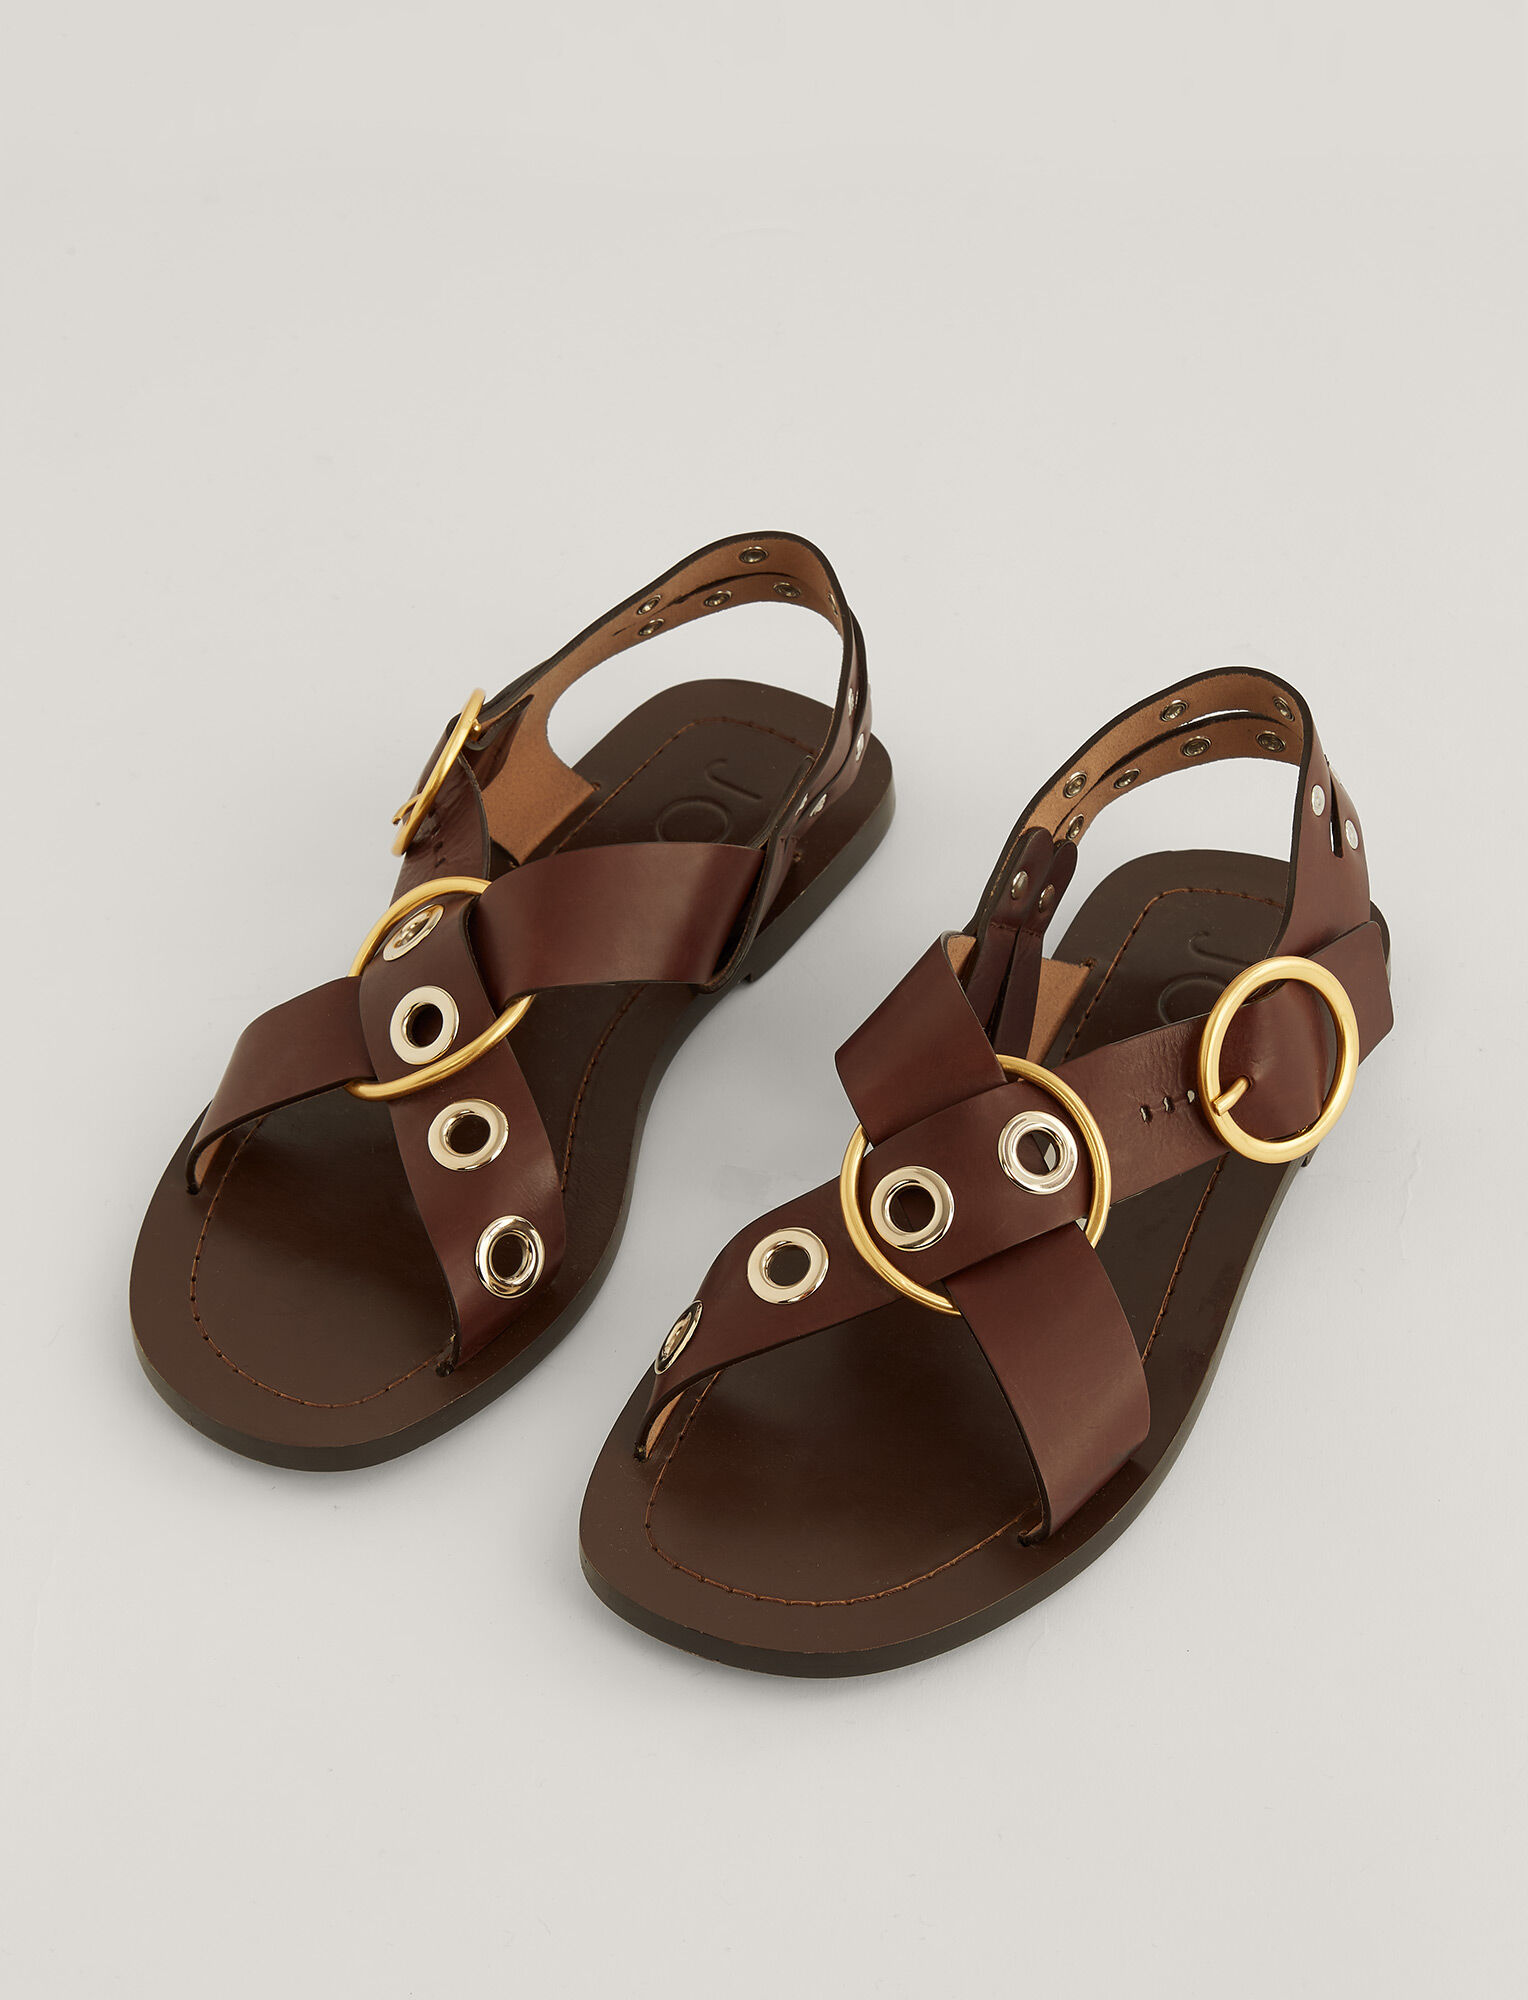 Joseph, Gaya Leather Sandal, in CHESTNUT